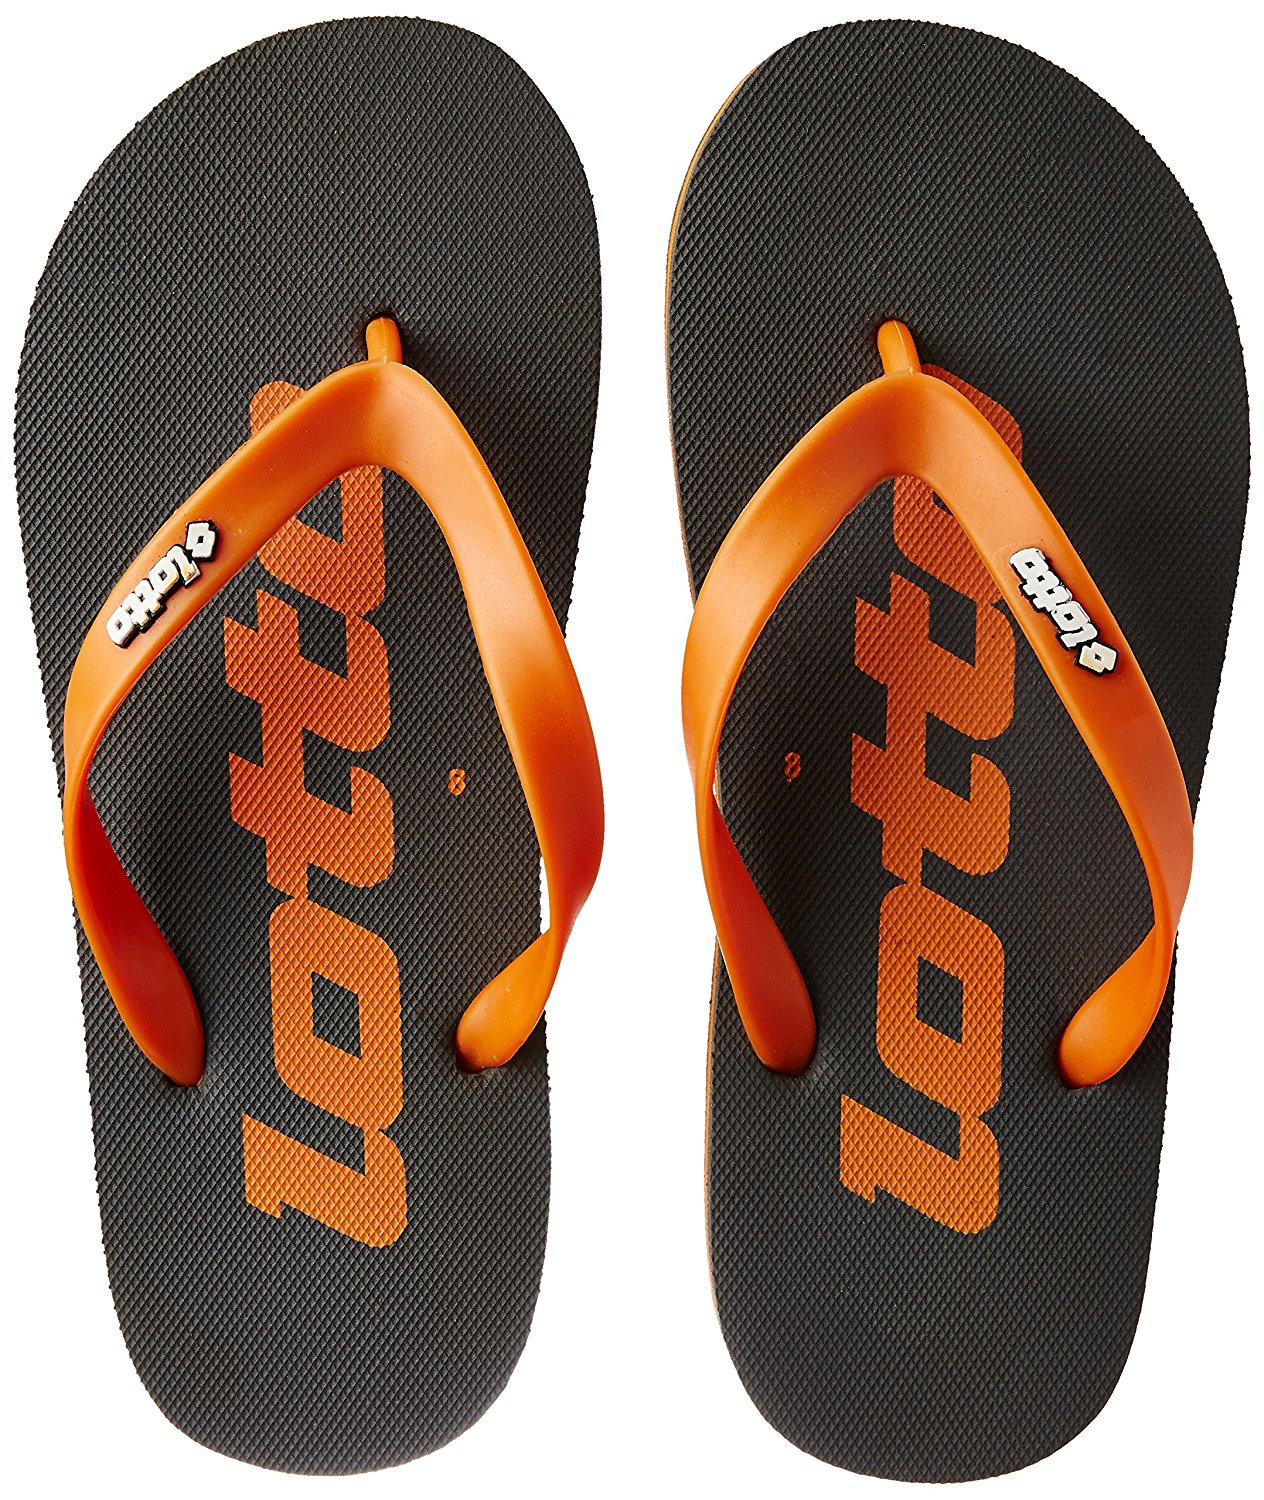 Amazon Deal - Get Lotto's Men's Slippers at Rs.149 Only